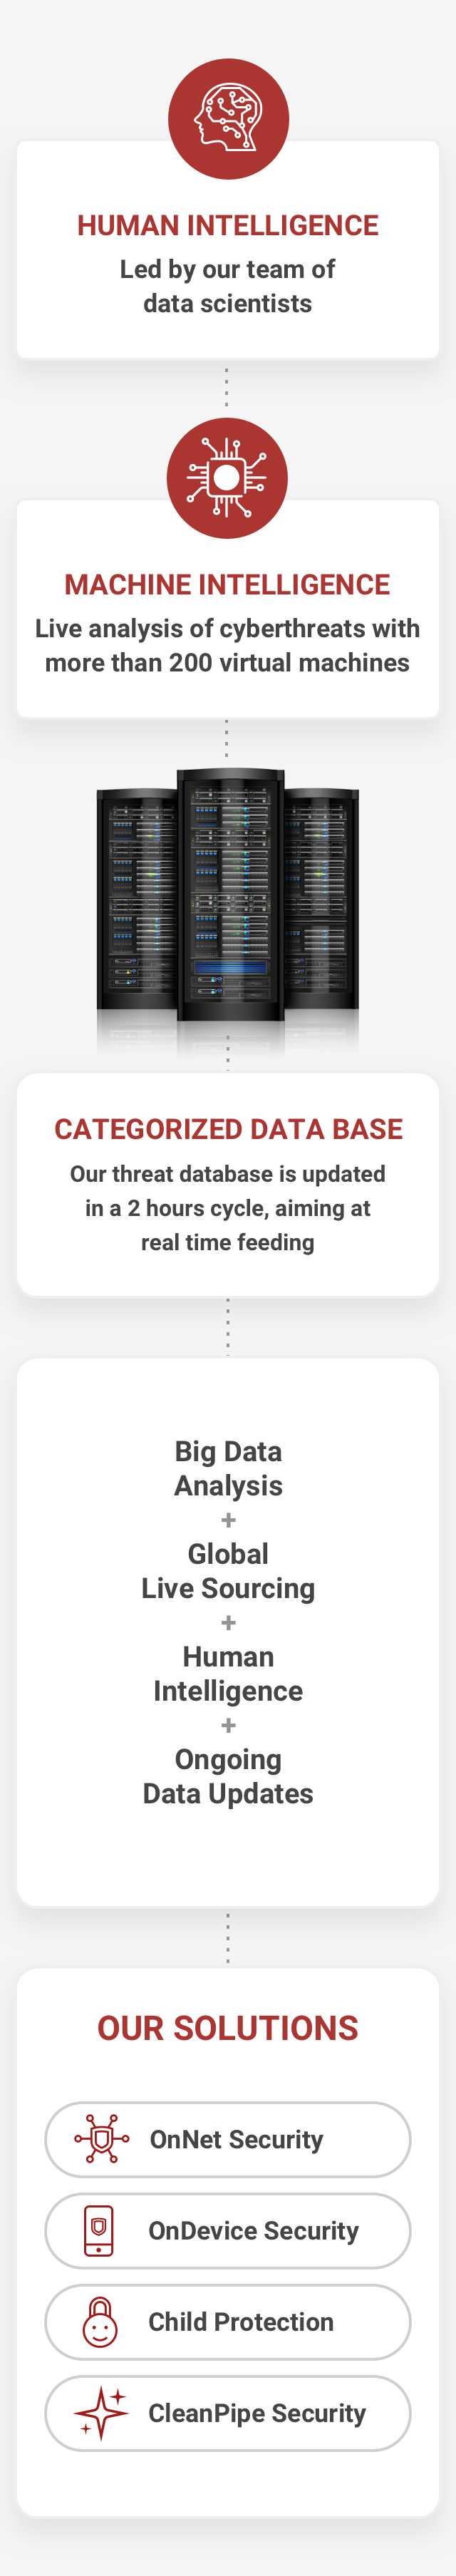 Our threat database is updated in a 2 hours cycle, aiming at real time feeding